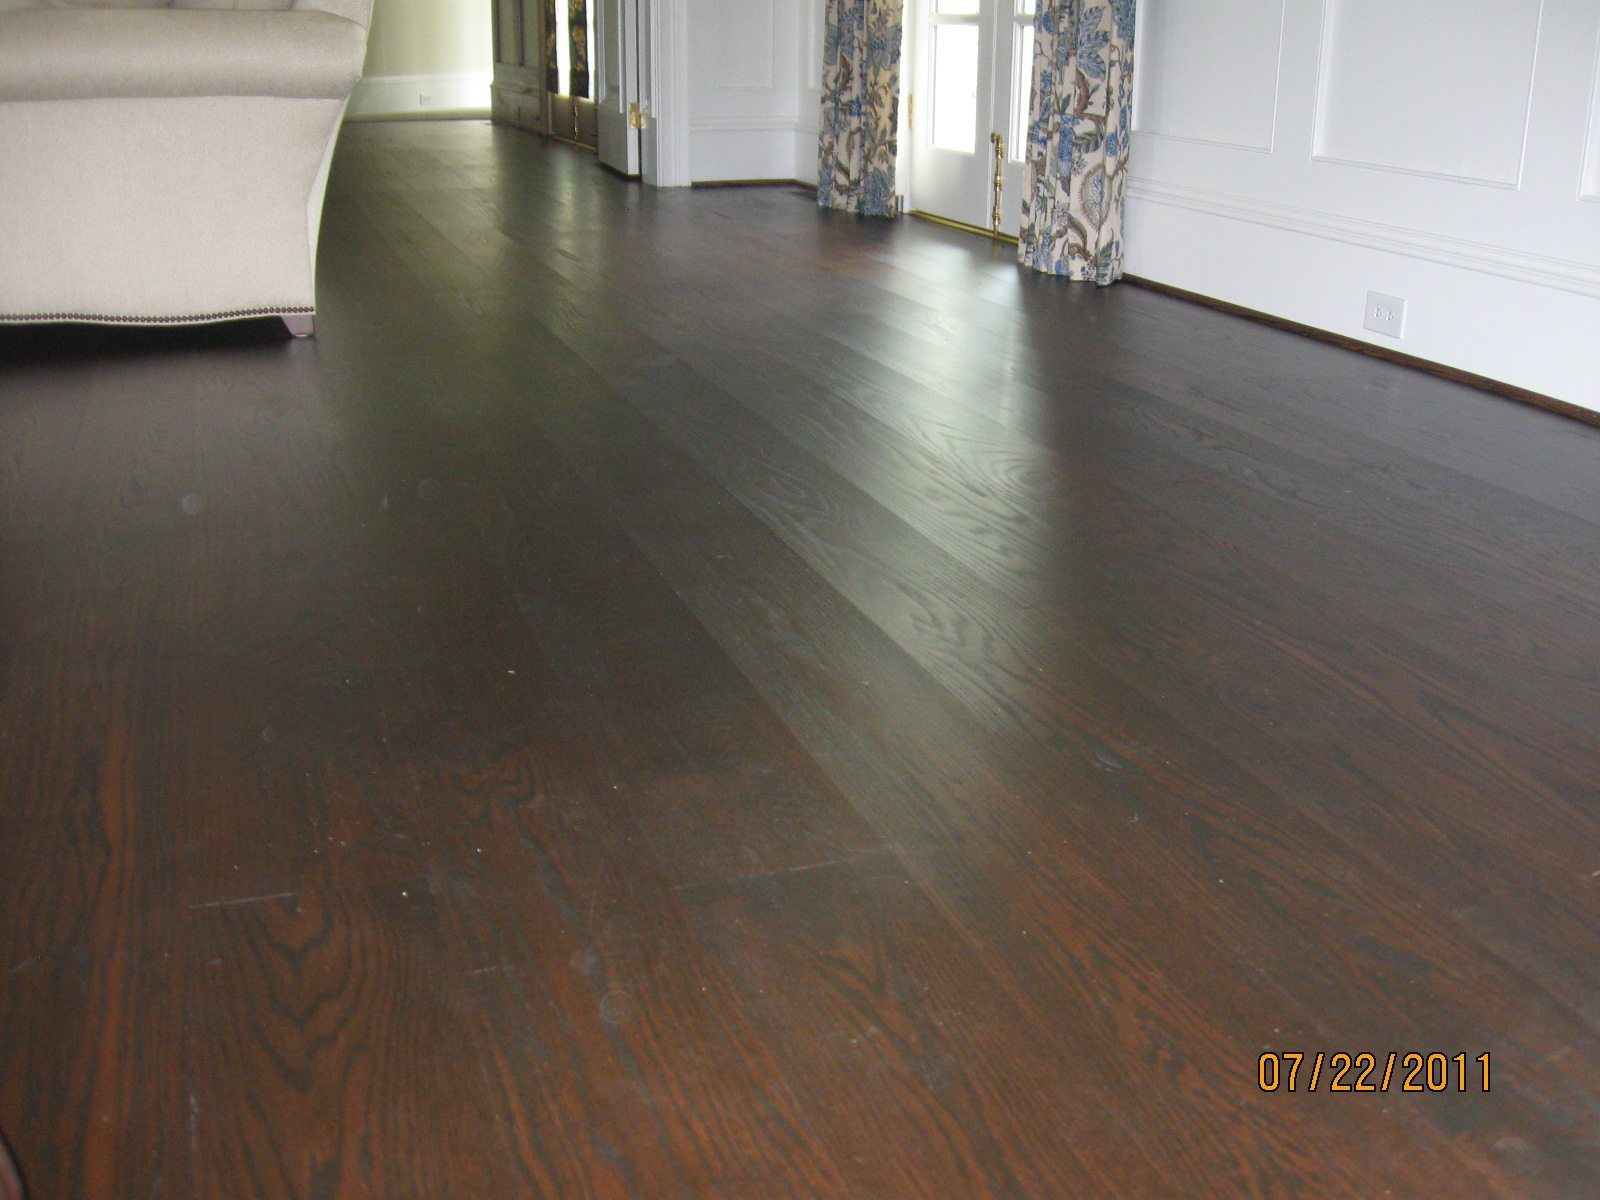 Oak Flooring & Dark Wood Flooring from Carlisle Wide Plank Floors